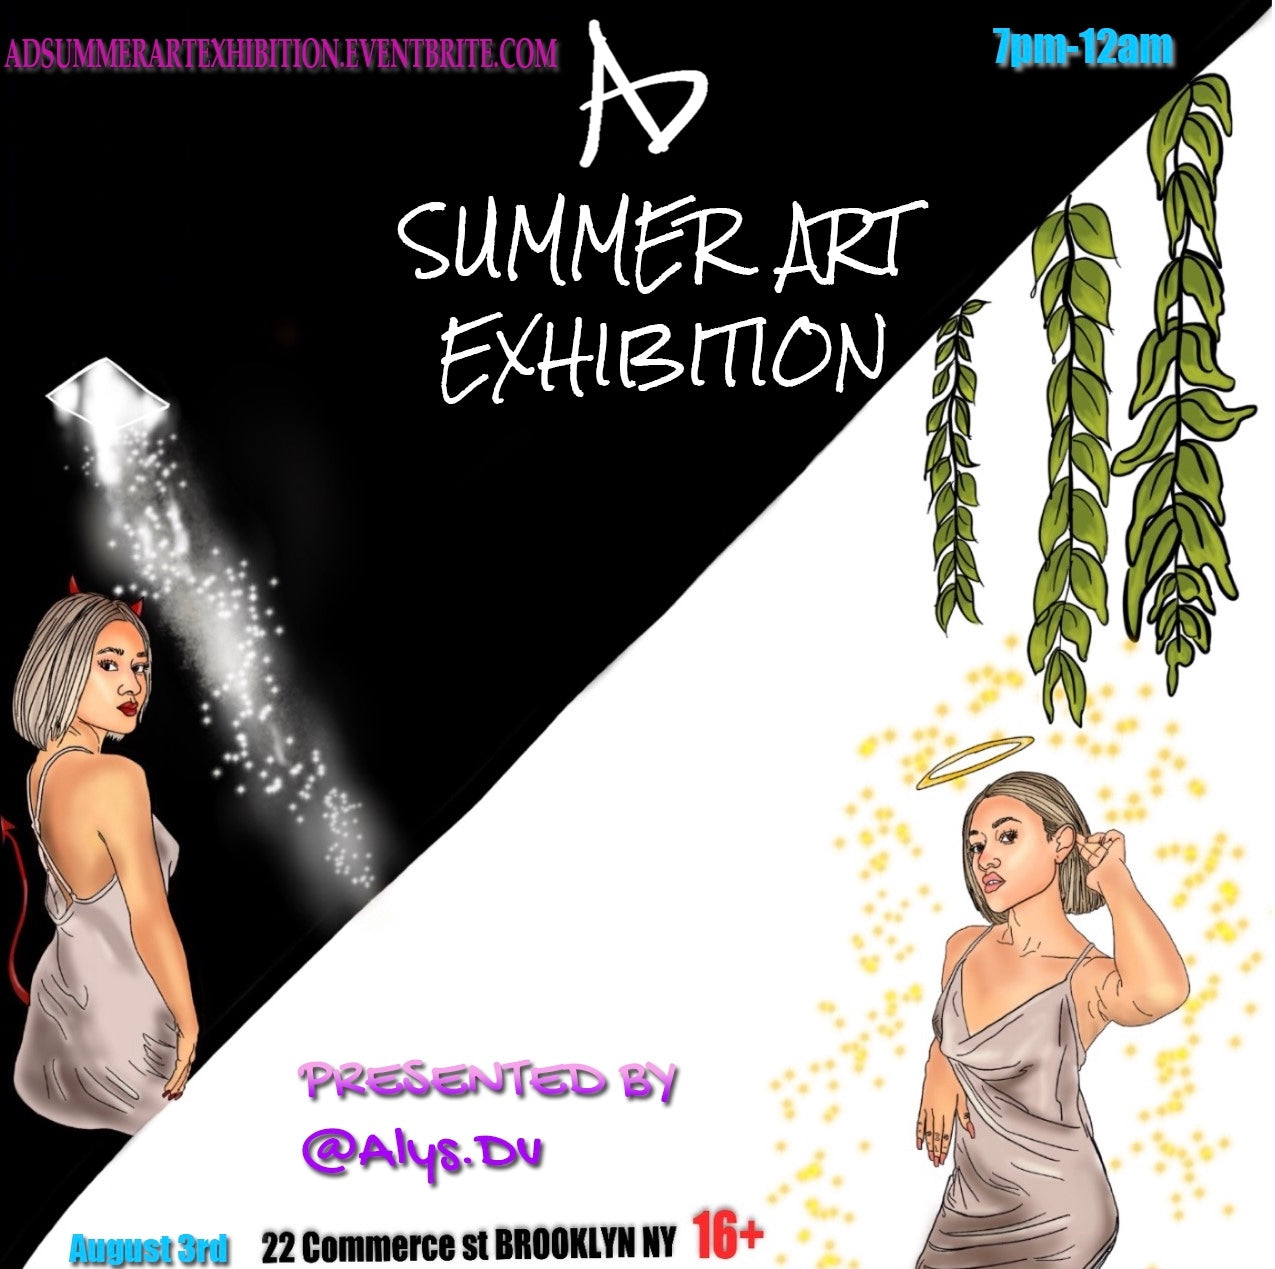 AD Summer Art Exhibition